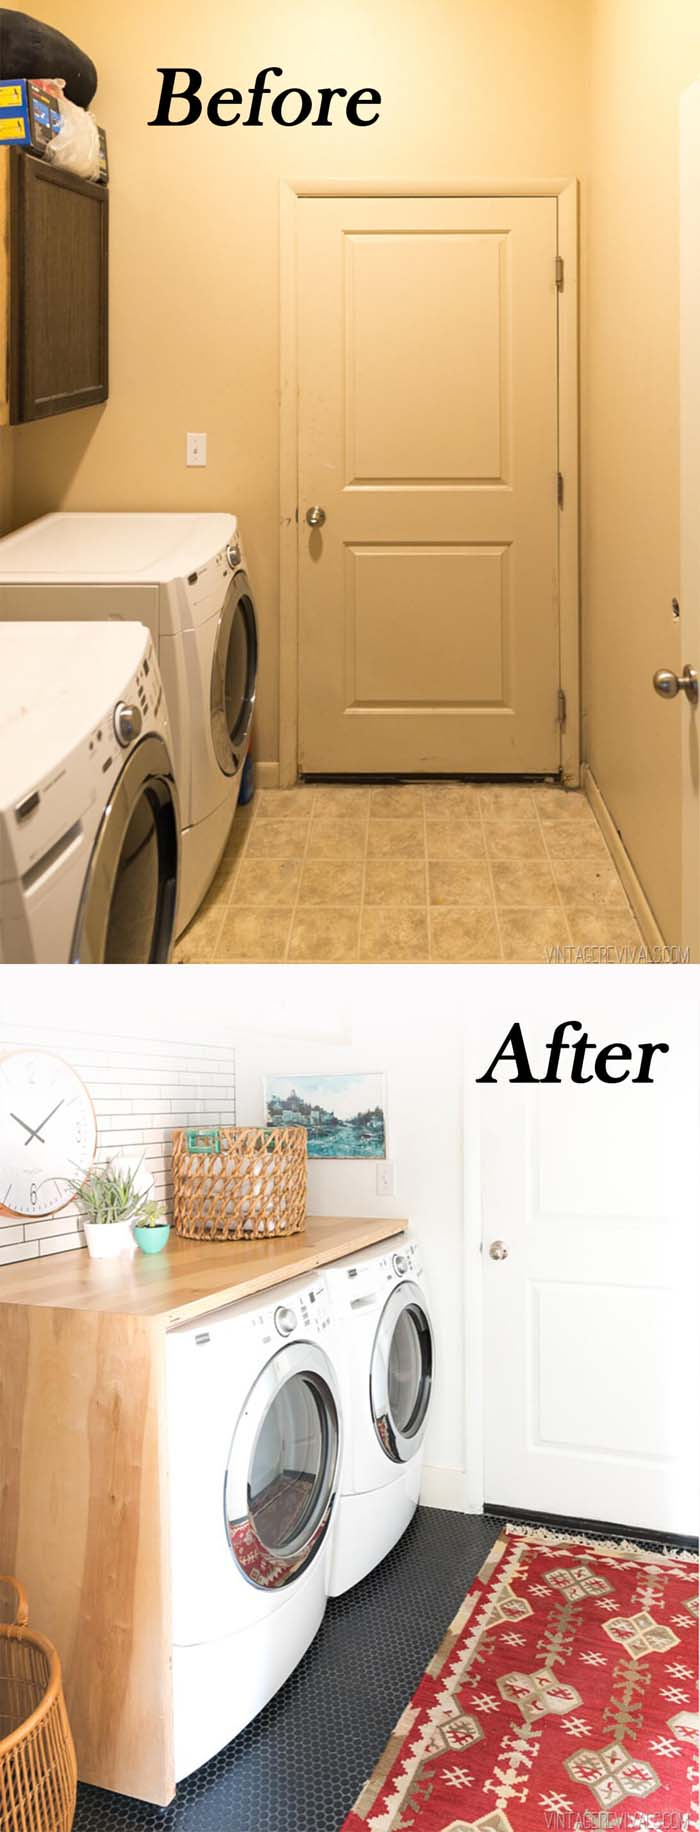 Cozier Working Space with Folding Counter #laundryroom #makeover #decorhomeideas